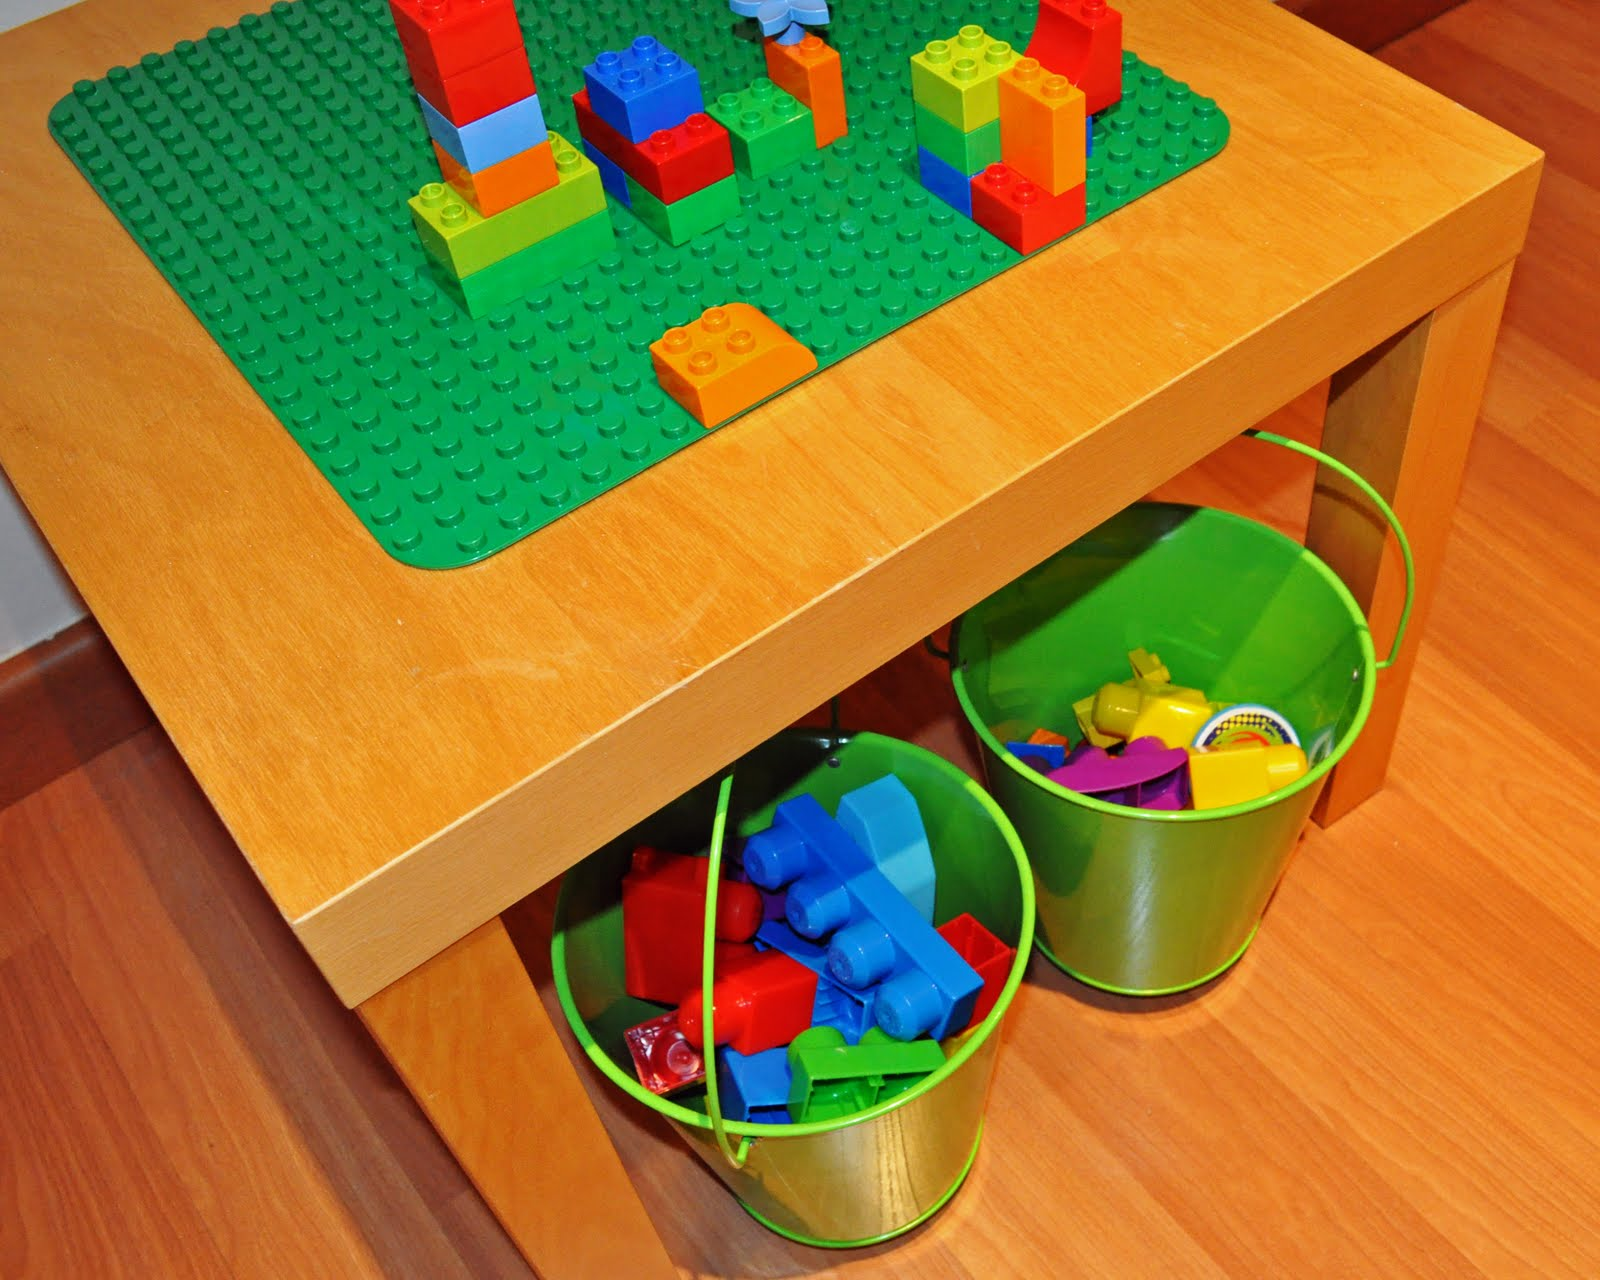 Lack lego table ikea hackers ikea hackers for Table lego ikea